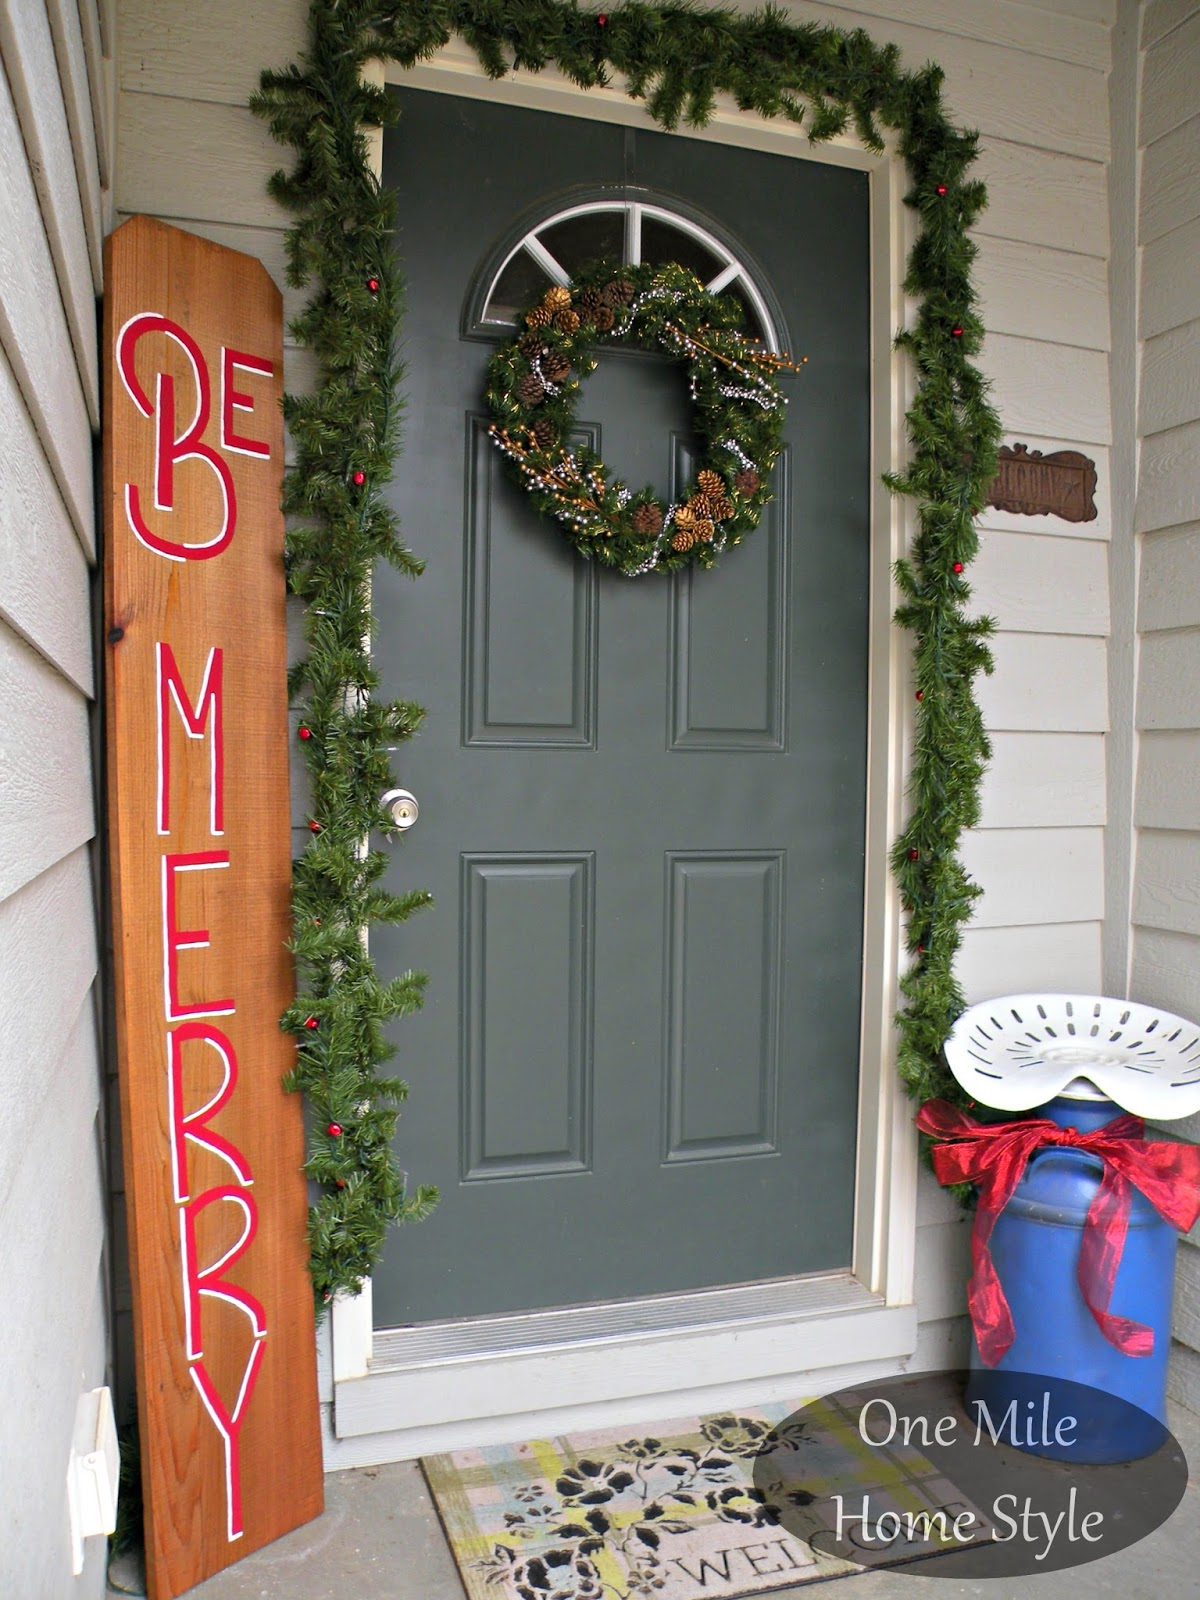 Be Merry Outdoor Holiday Decor | One Mile Home Style